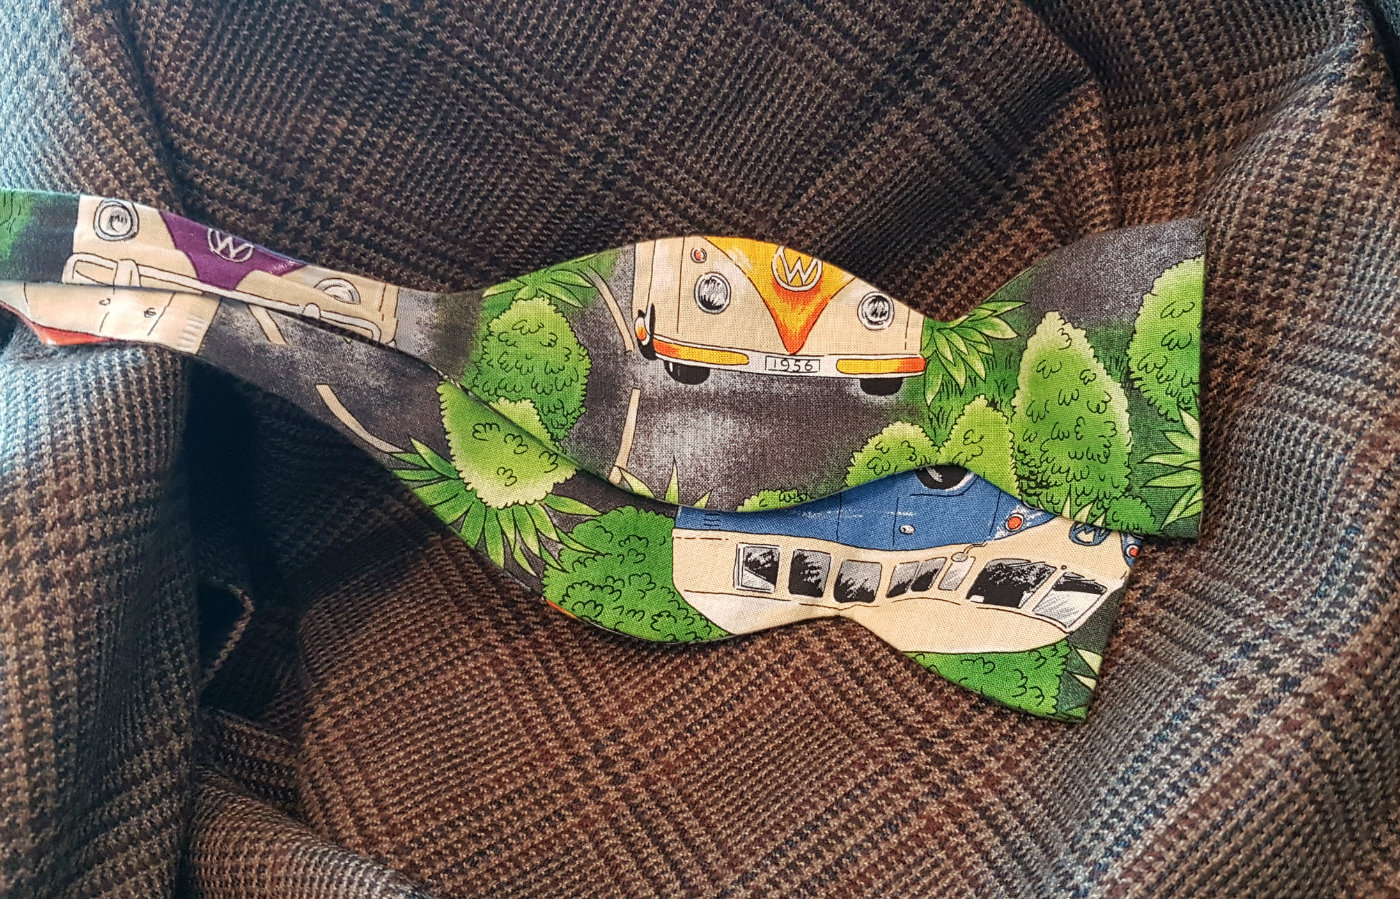 vw campervan themed bowtie